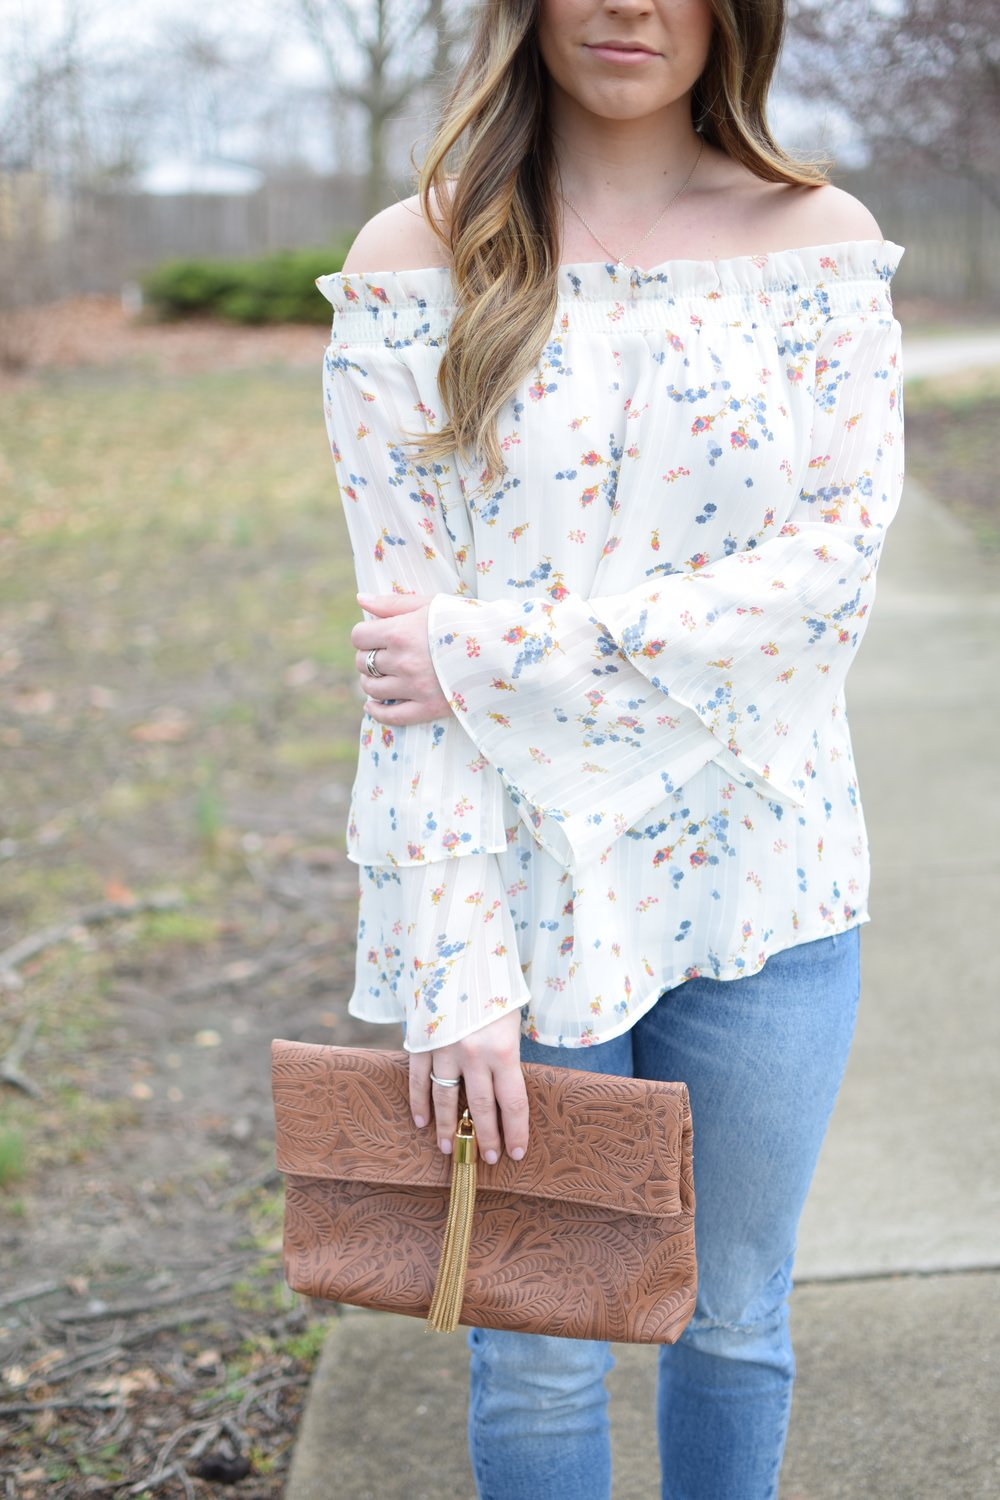 spring outfit idea / floral top / off the shoulder